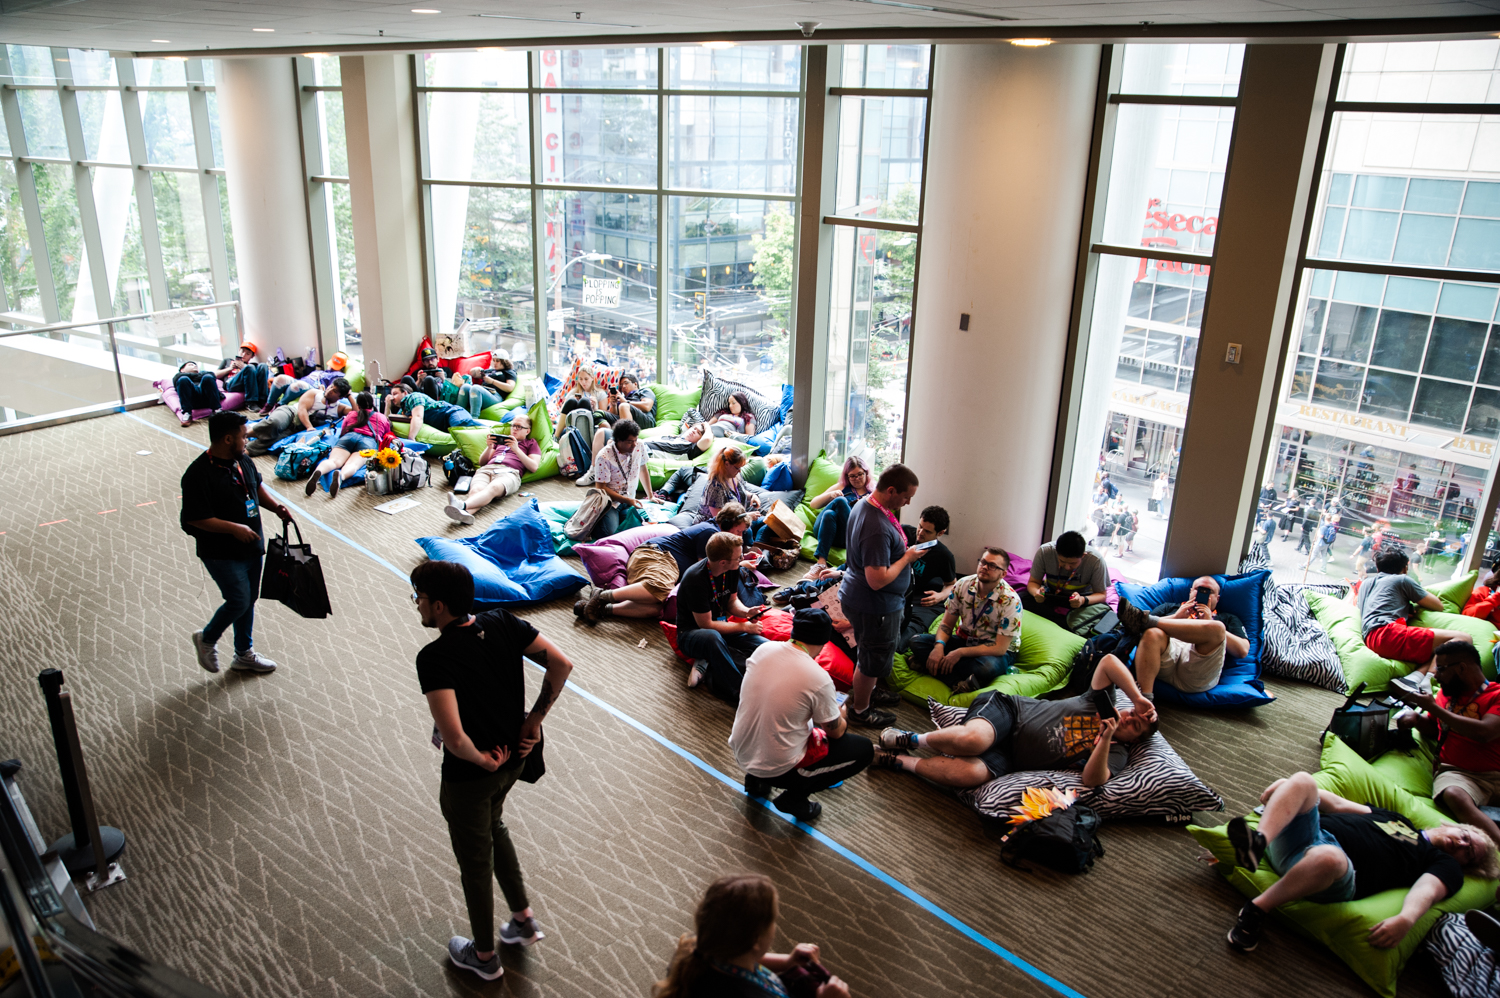 Seattle's Penny Arcade Expo (PAX West) brings tens of thousands of people to the Washington State Convention Center every year! PAX West includes concerts, arcade games, video game tournaments, cosplay and more - and runs the entirety of Labor Day Weekend (Aug. 30 – Sept.2). (Image: ElizabethCrook / Seattle Refined)